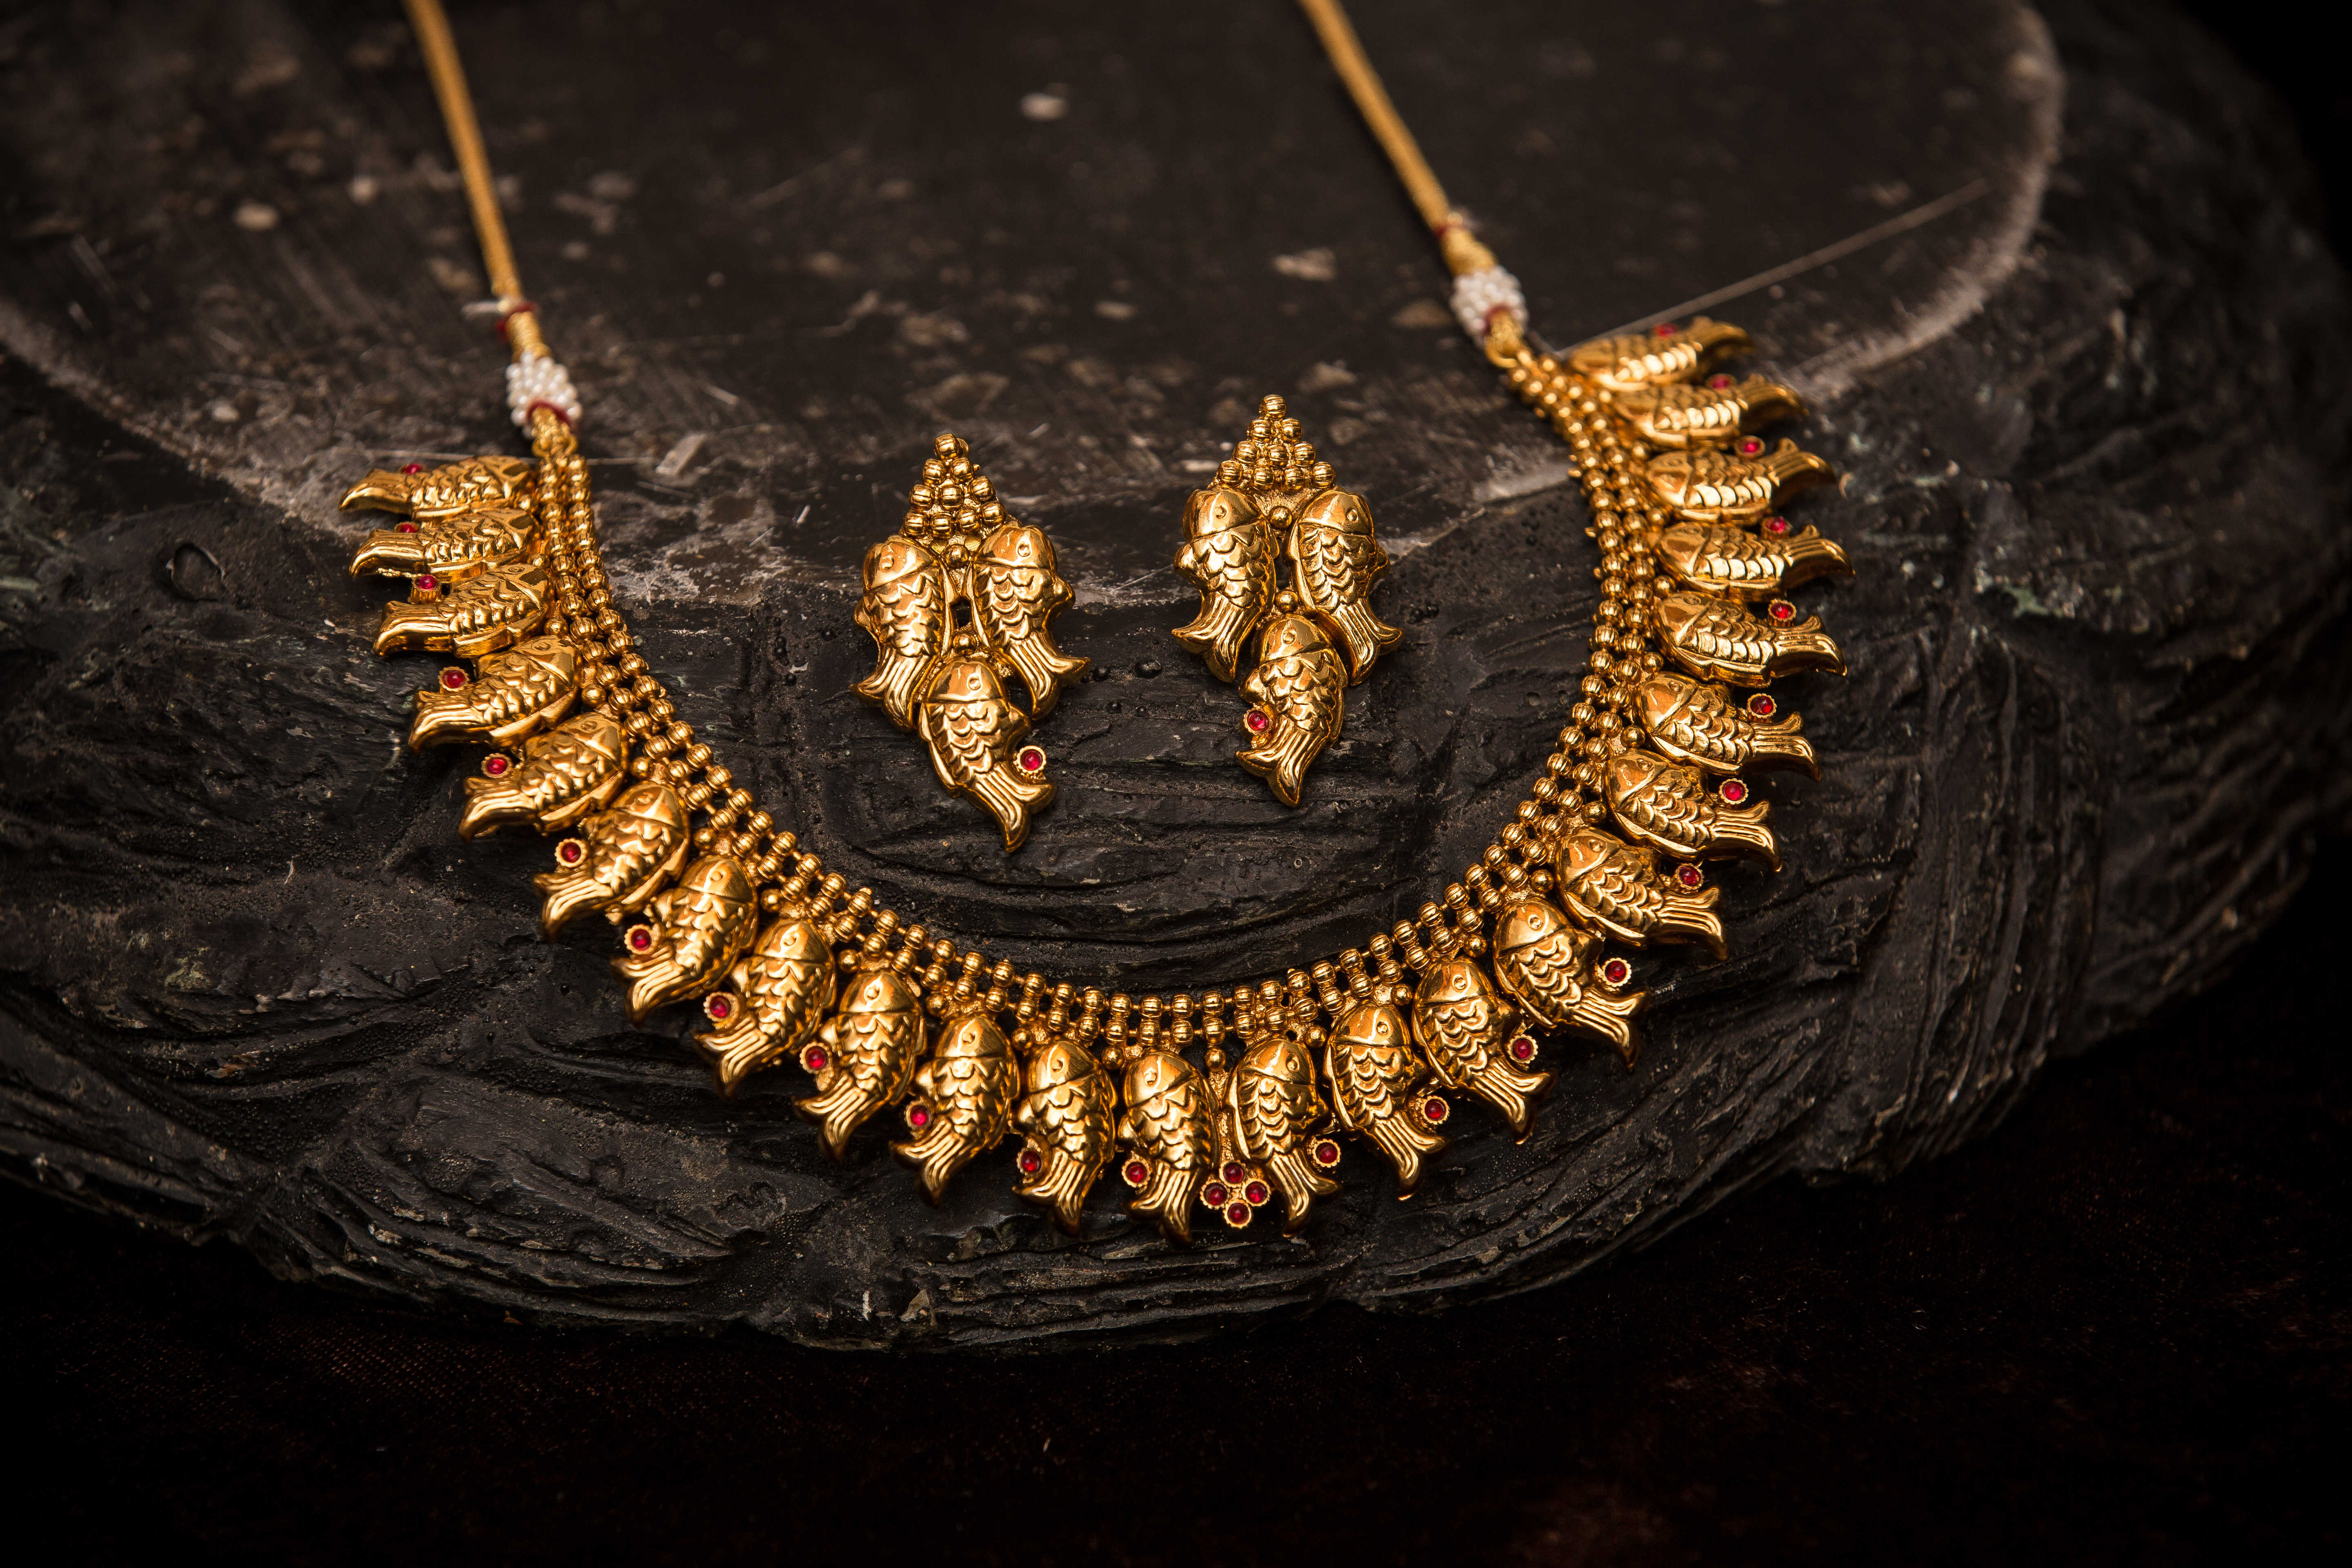 2-Imitation-peacock-necklace-and-earrings3